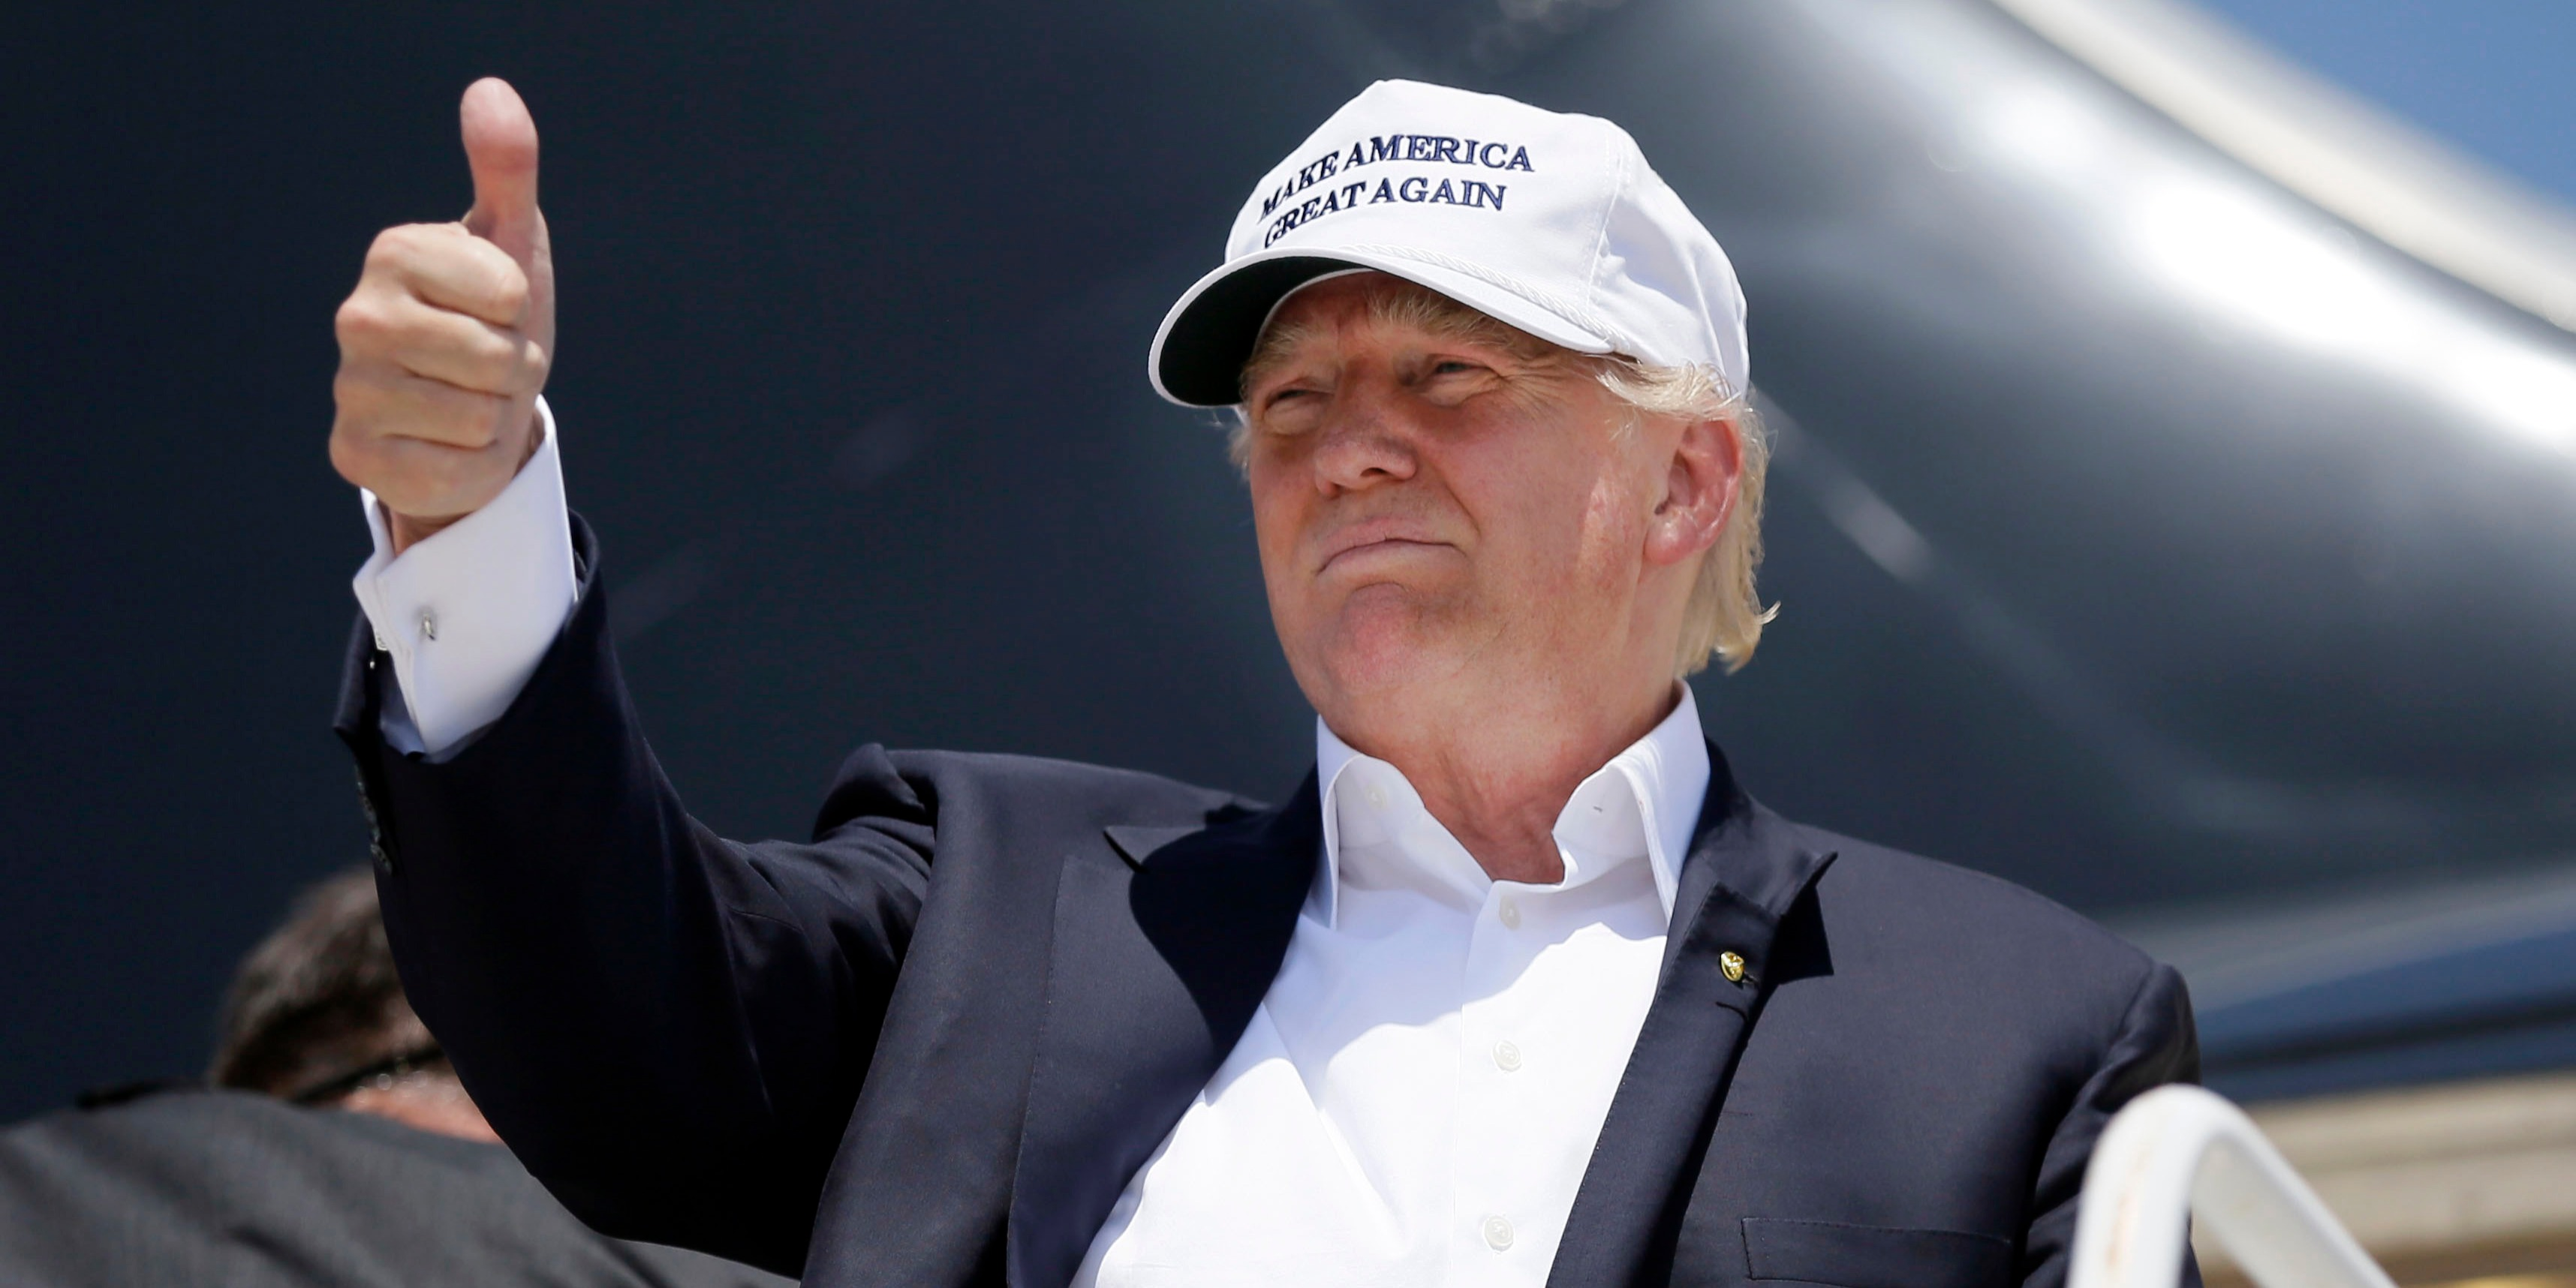 the-real-reason-donald-trump-is-selling-those-make-america-great-again-hats